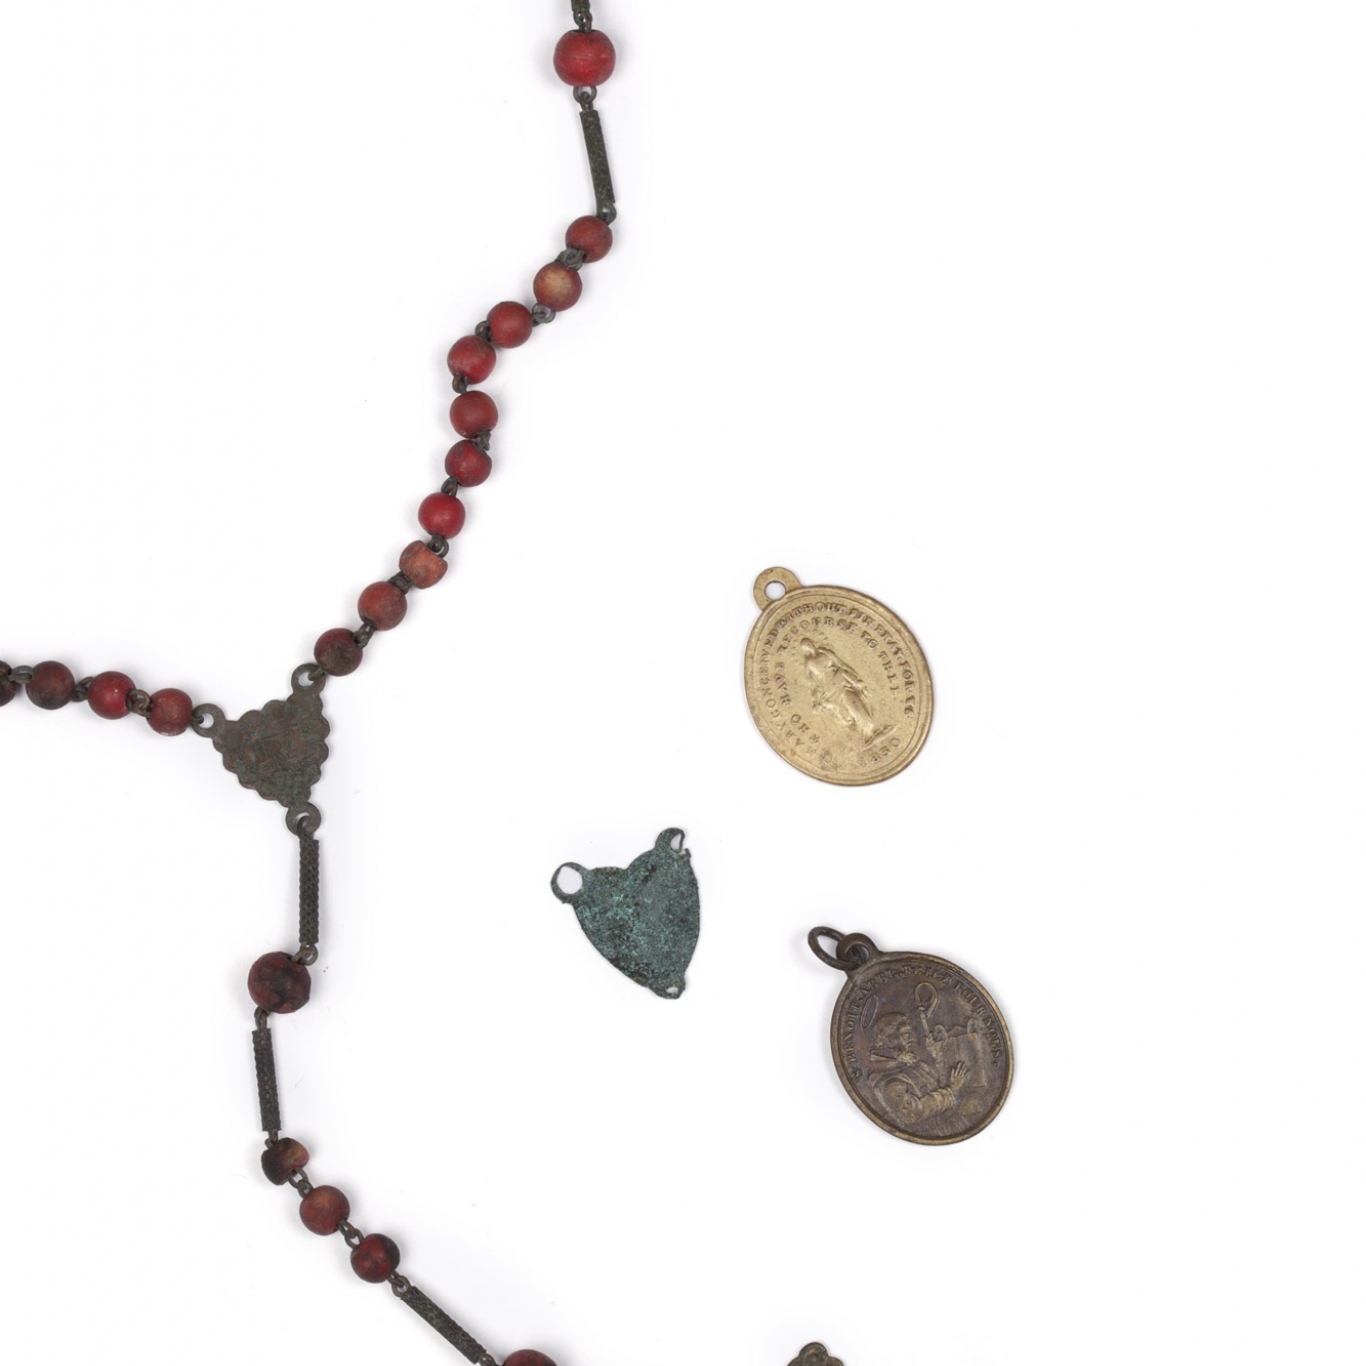 Neclklace with 3 small medals in form of sacred hearts.